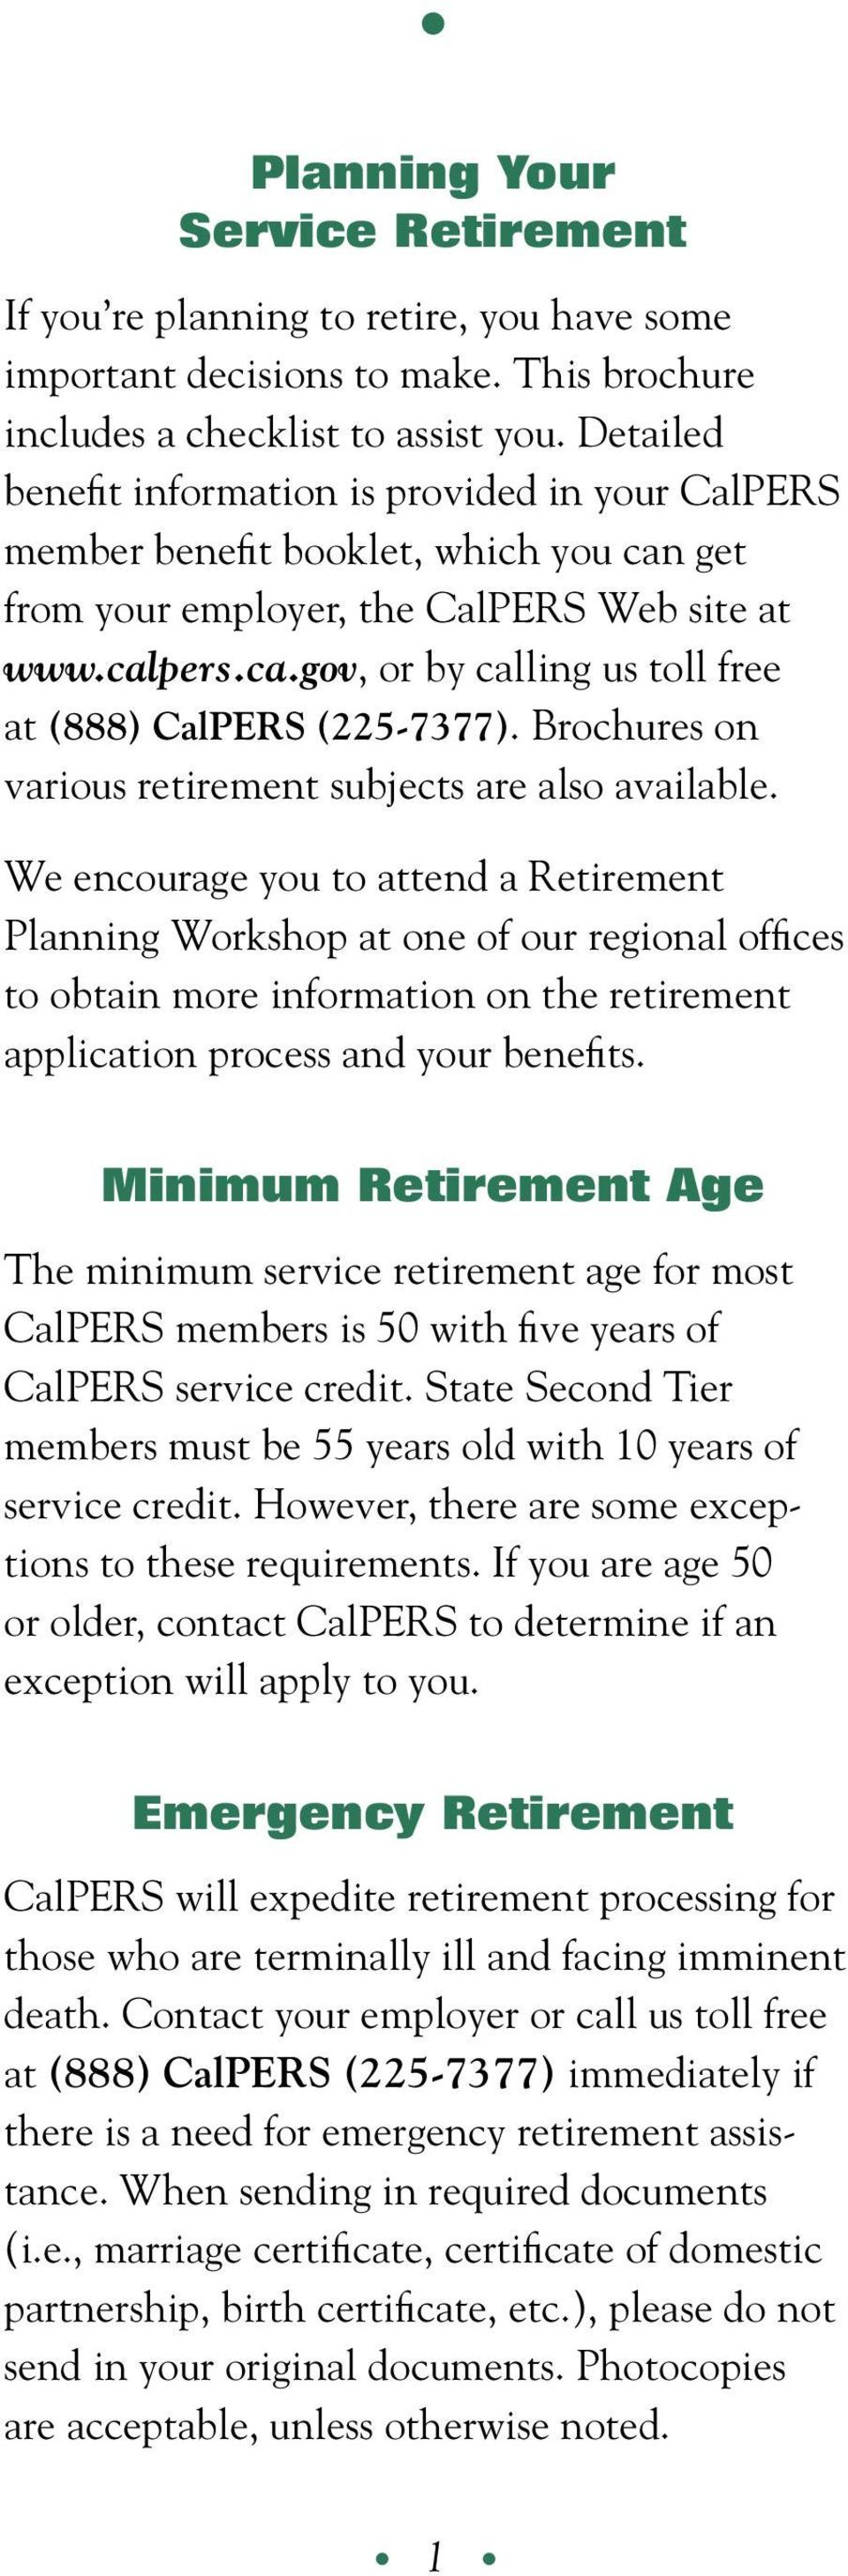 Brochures on various retirement subjects are also available.